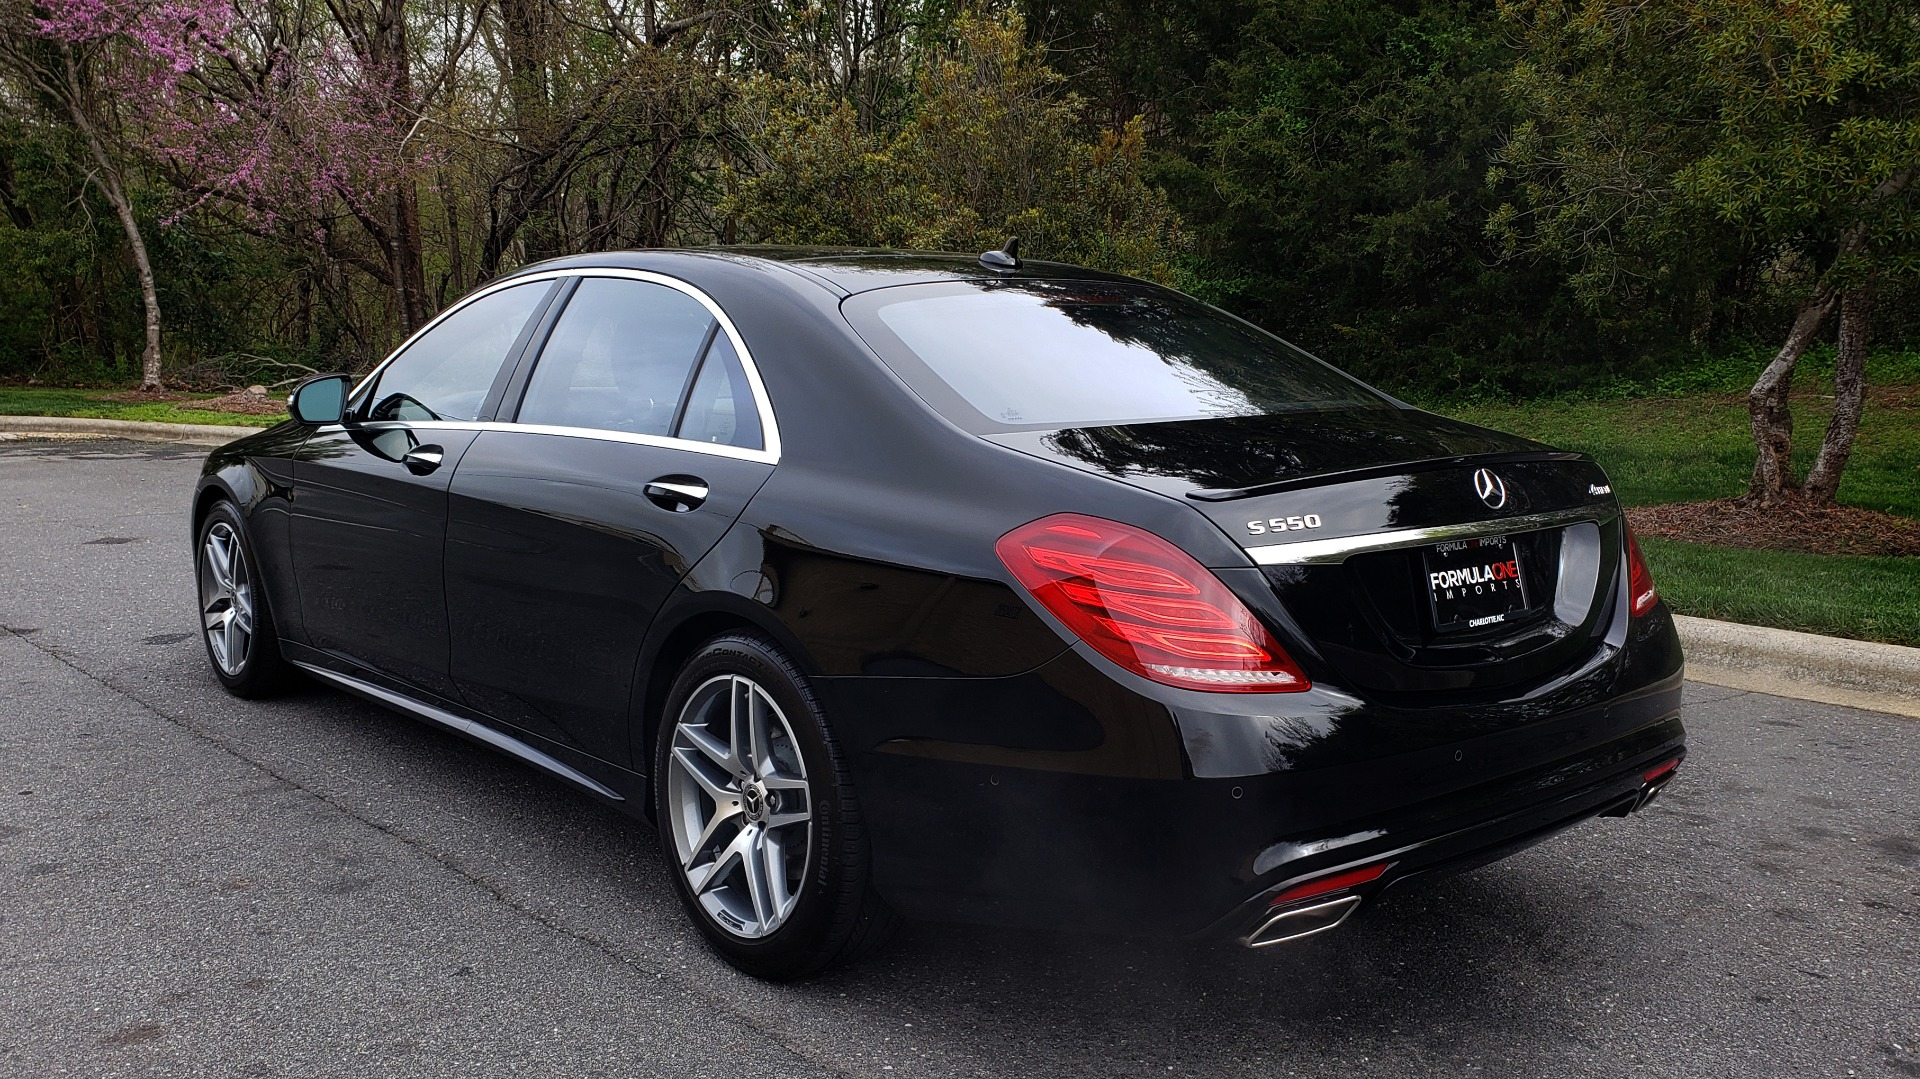 Used 2017 Mercedes-Benz S-CLASS S 550 4MATIC SPORT / PREM PKG / WARMTH & COMFORT / KEYLESS-GO for sale Sold at Formula Imports in Charlotte NC 28227 3